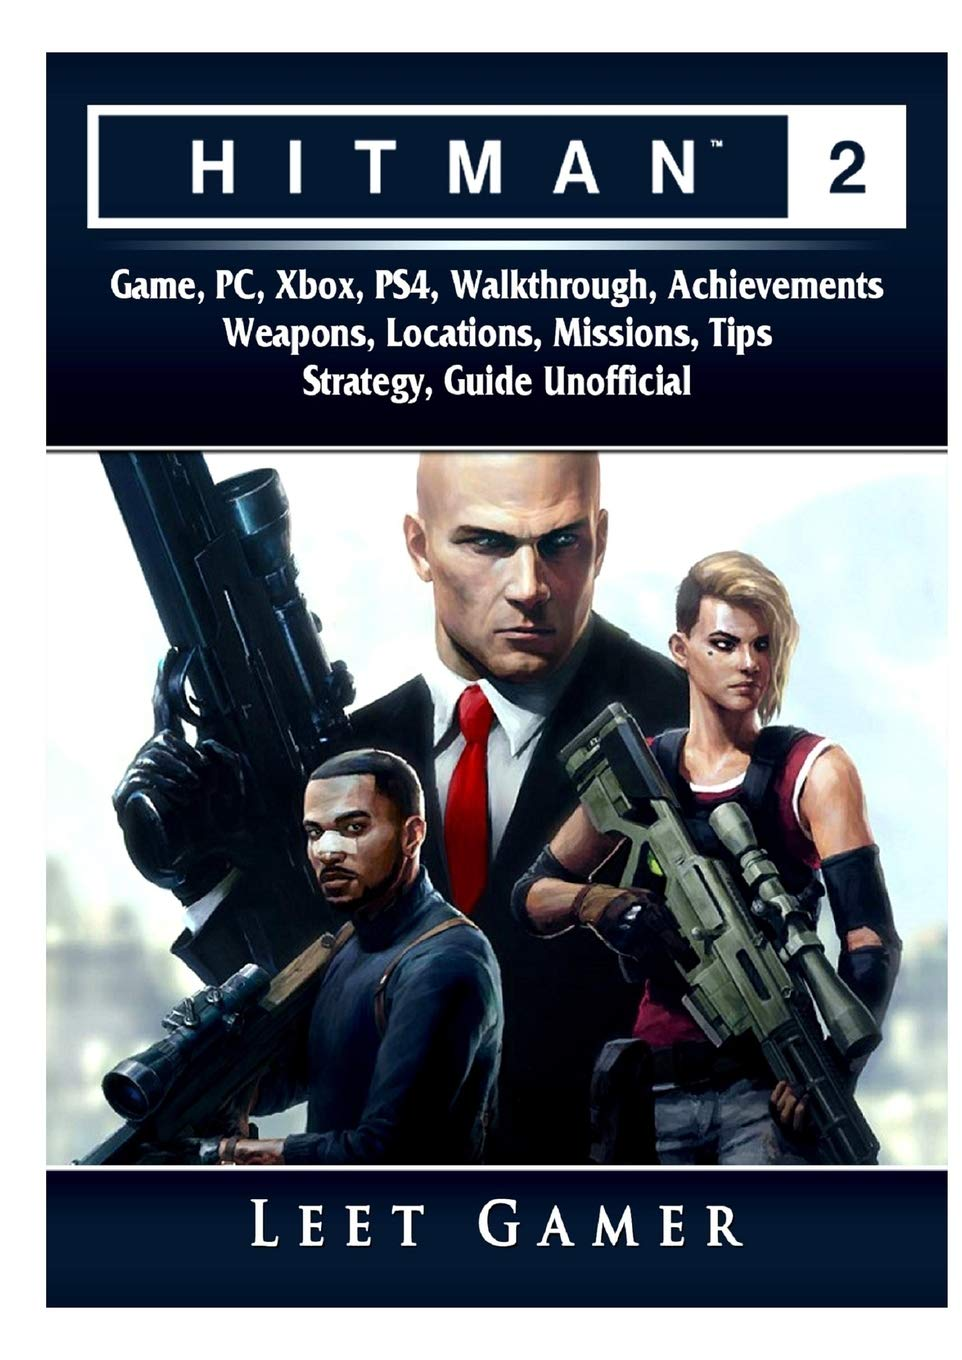 Buy Hitman 2 Game Pc Xbox Ps4 Walkthrough Achievements Weapons Locations Missions Tips Strategy Guide Unofficial Book Online At Low Prices In India Hitman 2 Game Pc Xbox Ps4 Walkthrough Achievements